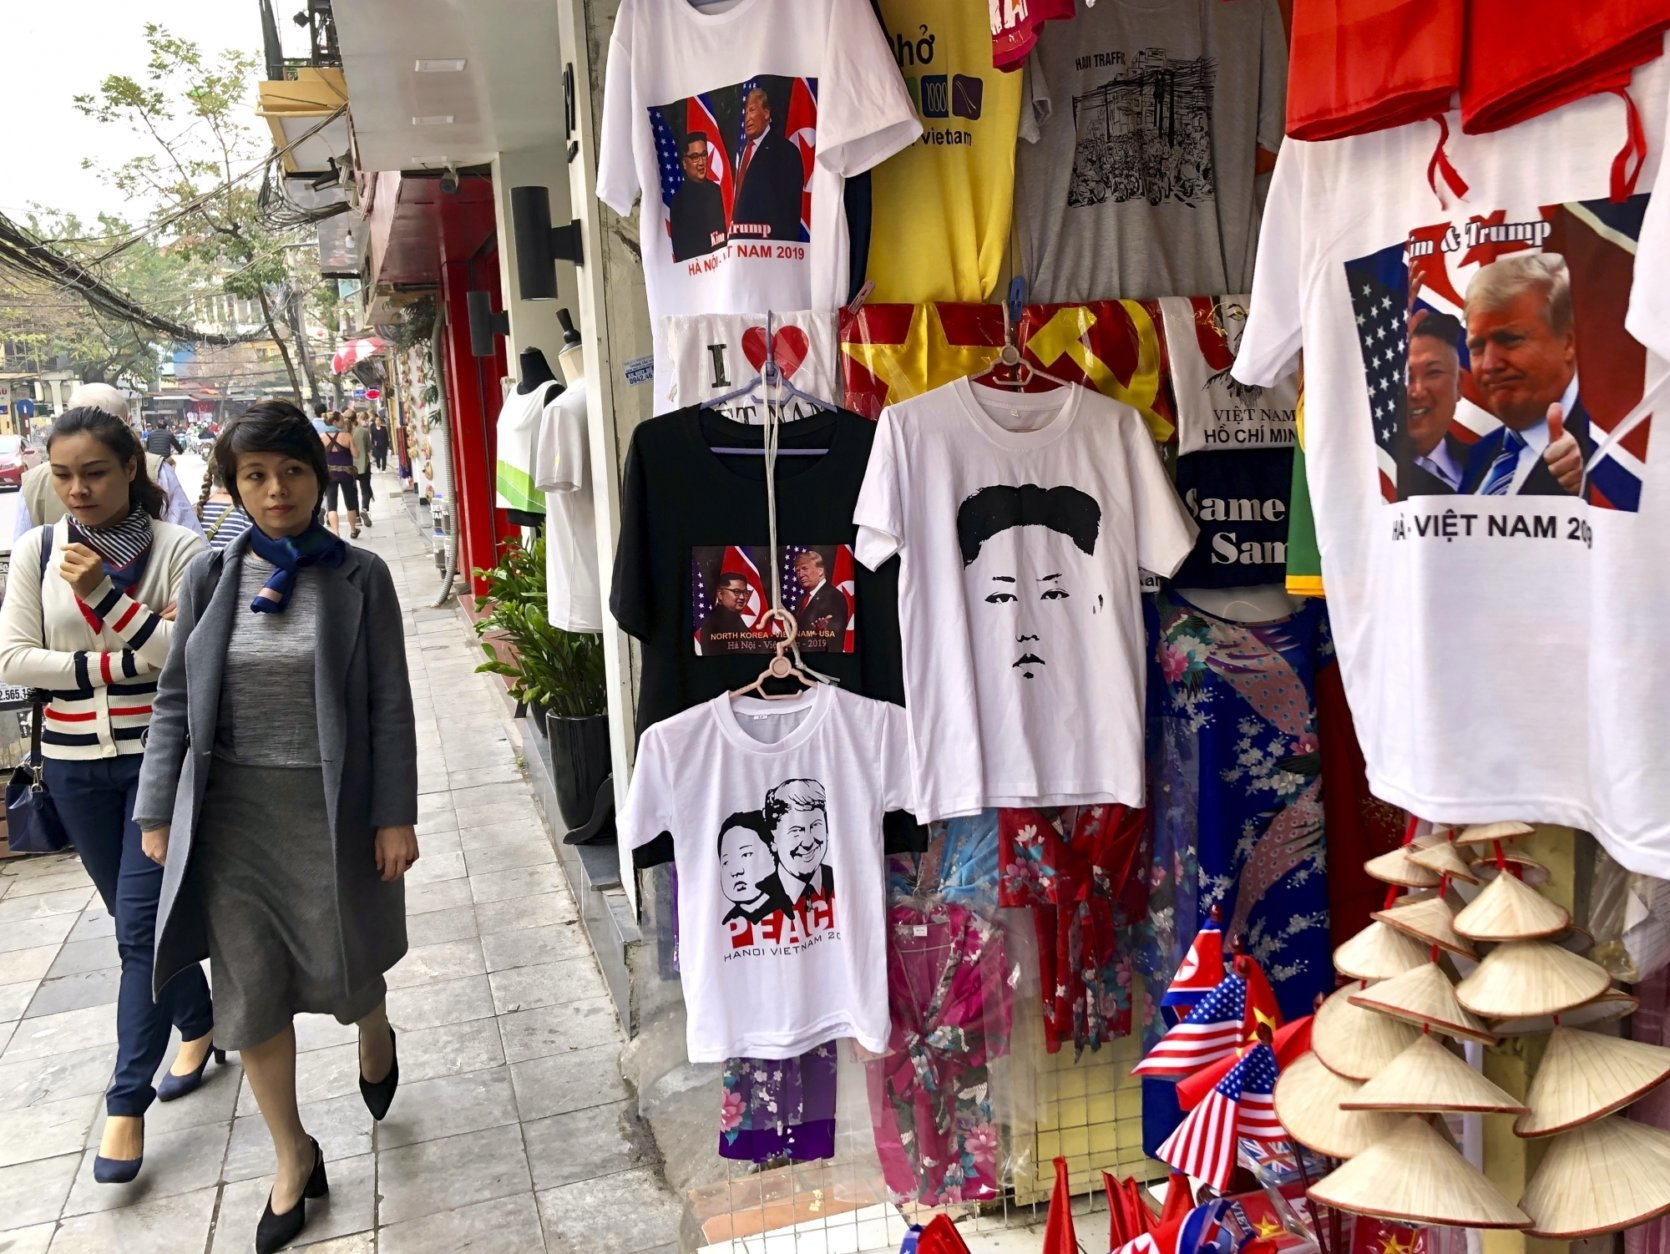 """A woman glances at a shop selling t-shirts marking the summit between U.S. President Donald Trump and North Korean leader Kim Jong Un in Hanoi, Vietnam, Wednesday, Feb. 27, 2019. Trump hoped for """"great things"""" from his second meeting with Kim as he paid a courtesy call on his Vietnamese hosts ahead of the summit in the Vietnamese capital. (AP Photo/Adam Schreck)"""